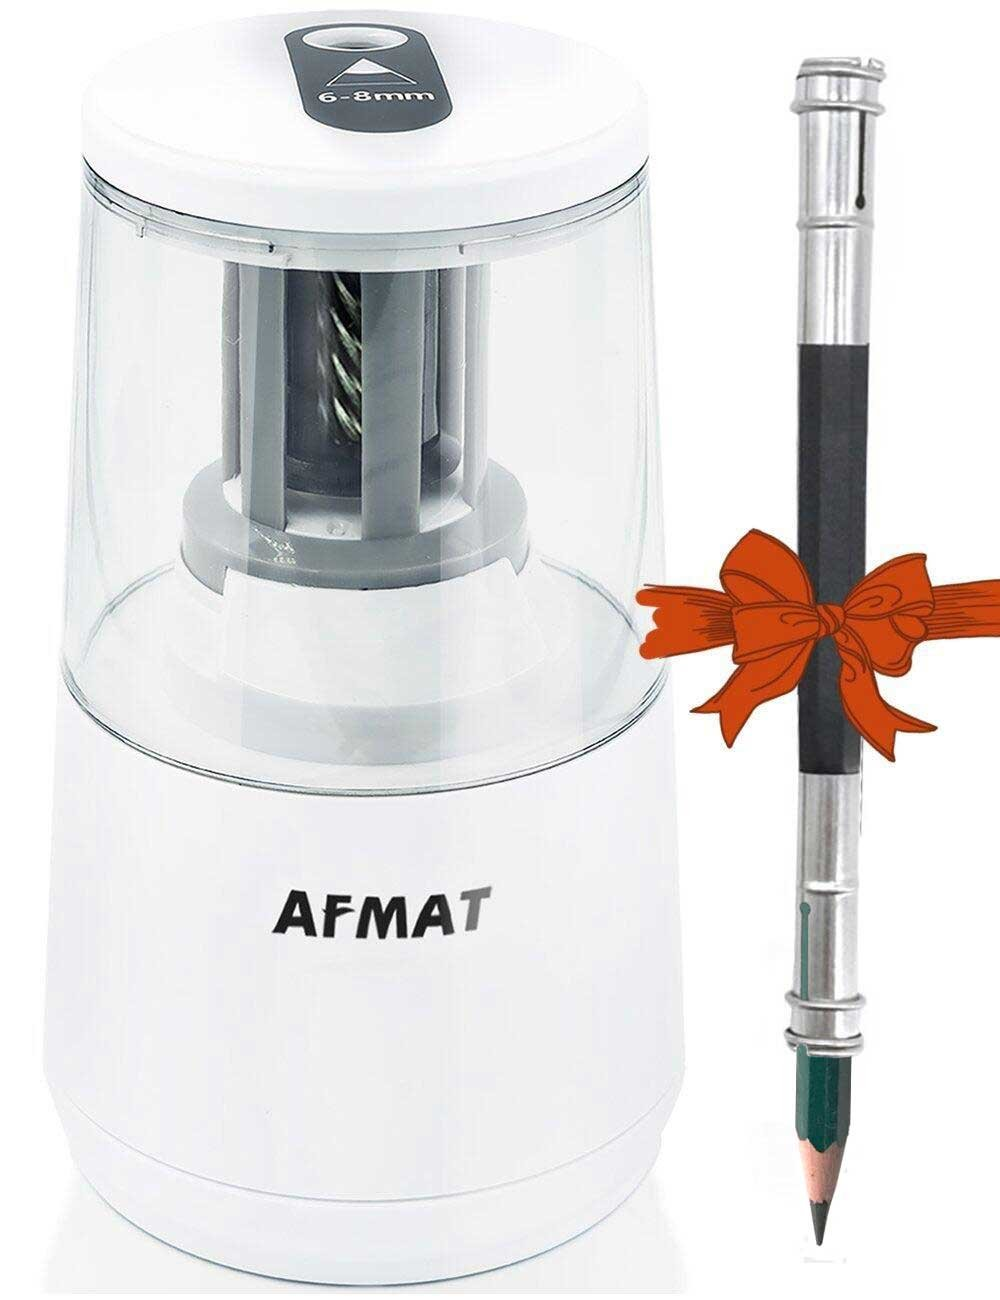 AFMAT Electric Pencil Sharpener, Helical Steel Blade, Sharpens All Pencils, USB Battery Operated for 6-8mm NO. 2 and Colored Pencils in School, Home, Office(Free Pencil Extender) -White